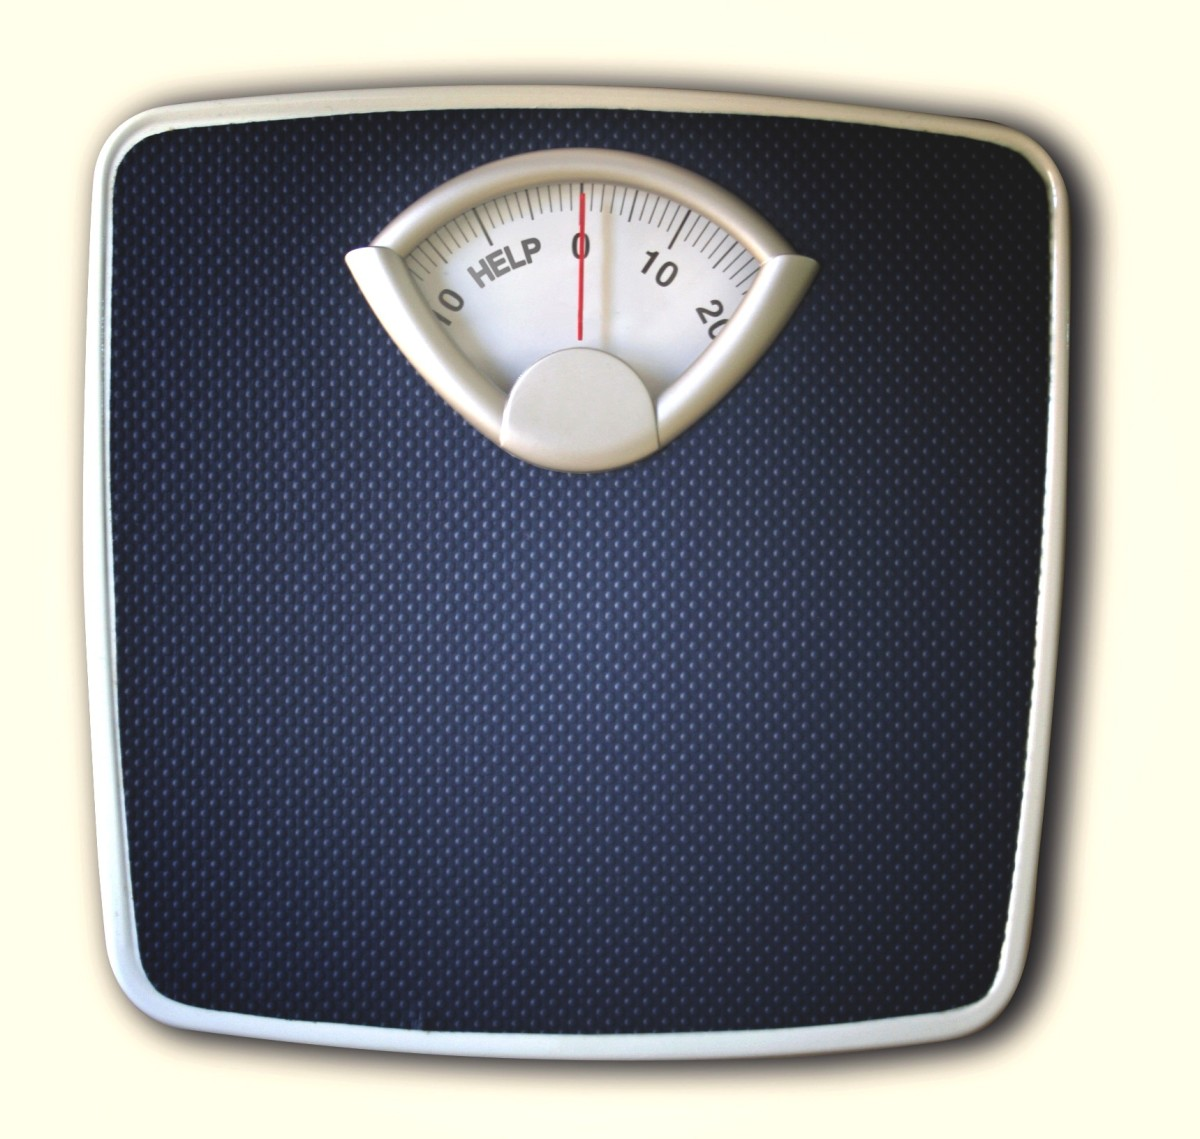 How To Calculate Your Body Fat Percentage Using A Tape Measure - 4 surprising things you didnt know your tape measure could do